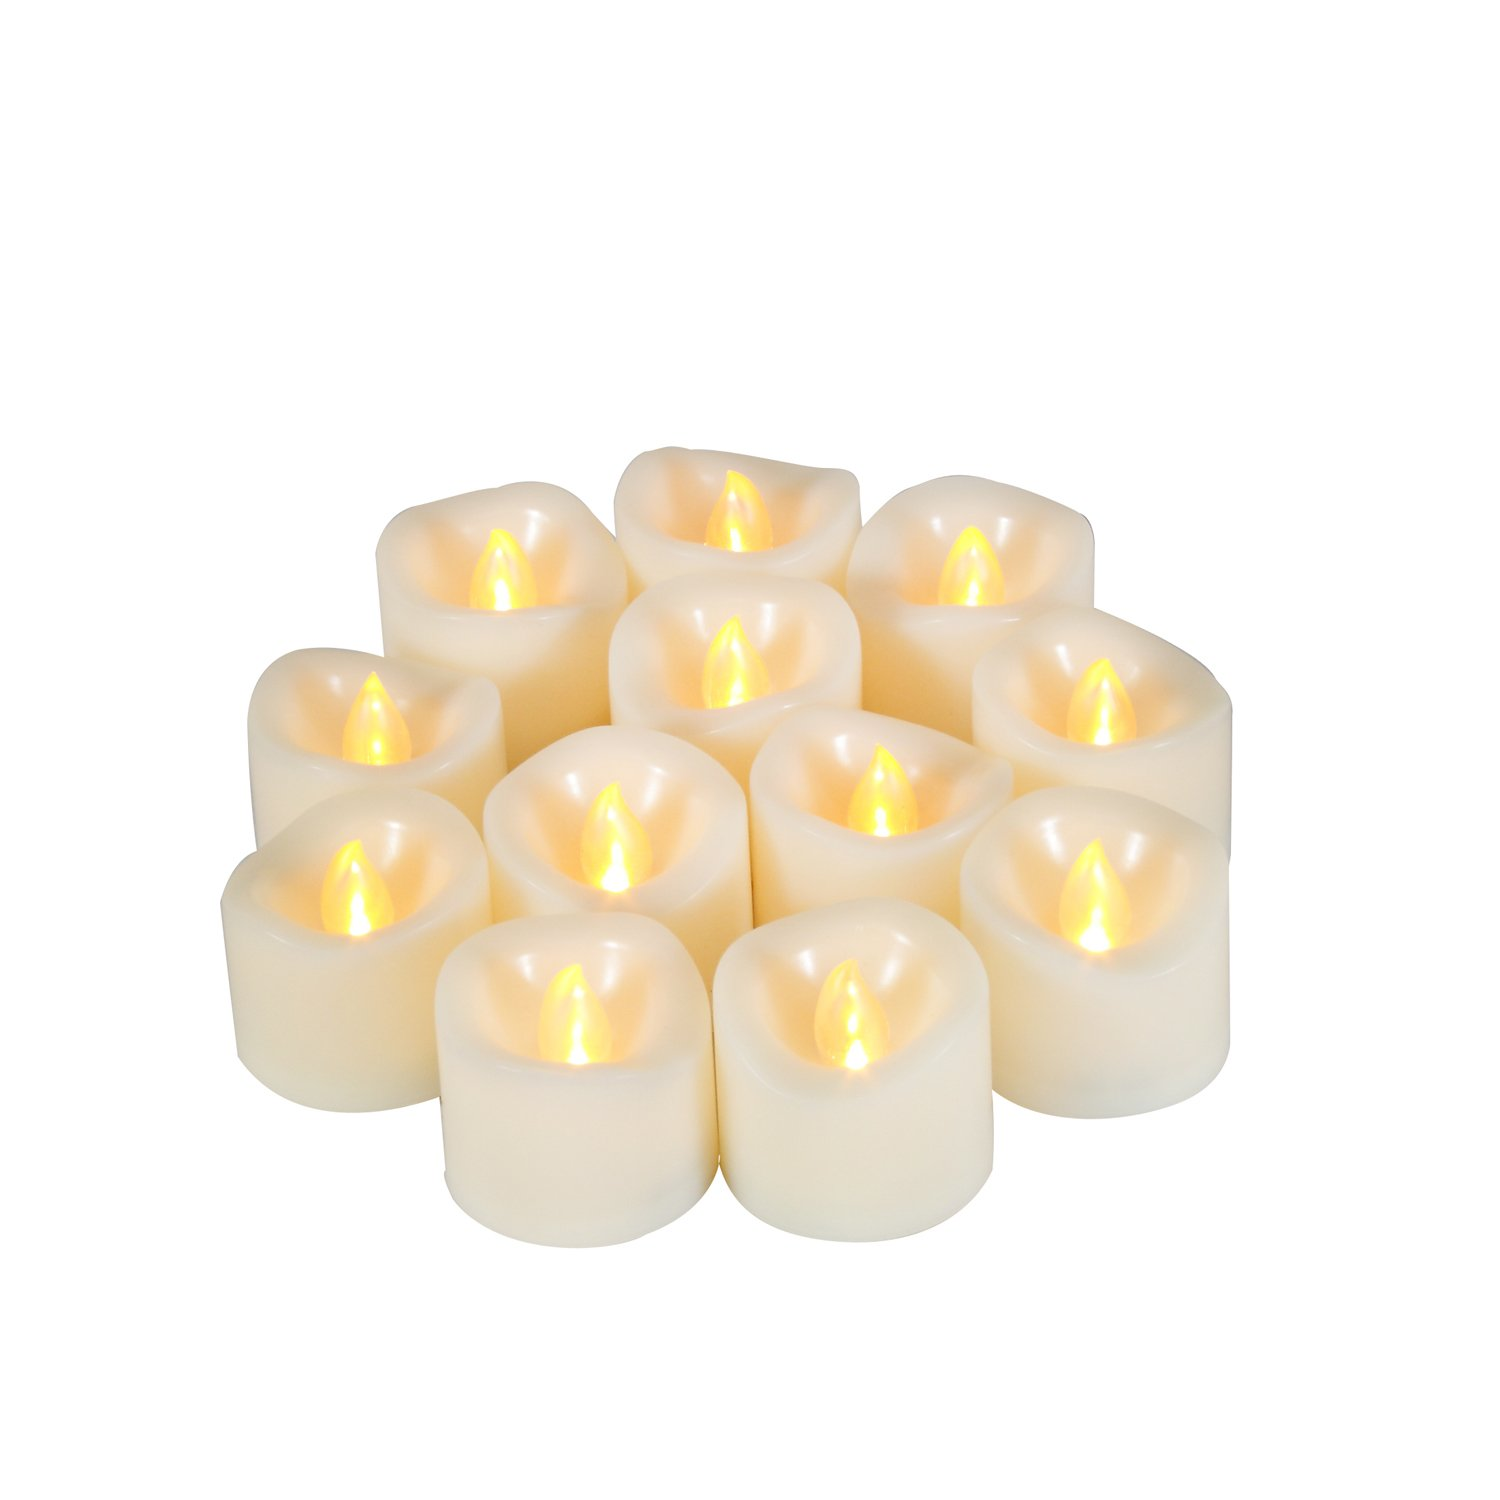 "iZAN Flameless LED Battery Operated Votive Candles Realistic Flickering Battery Powered Tea Lights Electric Tealights by Size-1.5""(D) x1.5""(H) 12-pack Long Lasting Batteries Included"